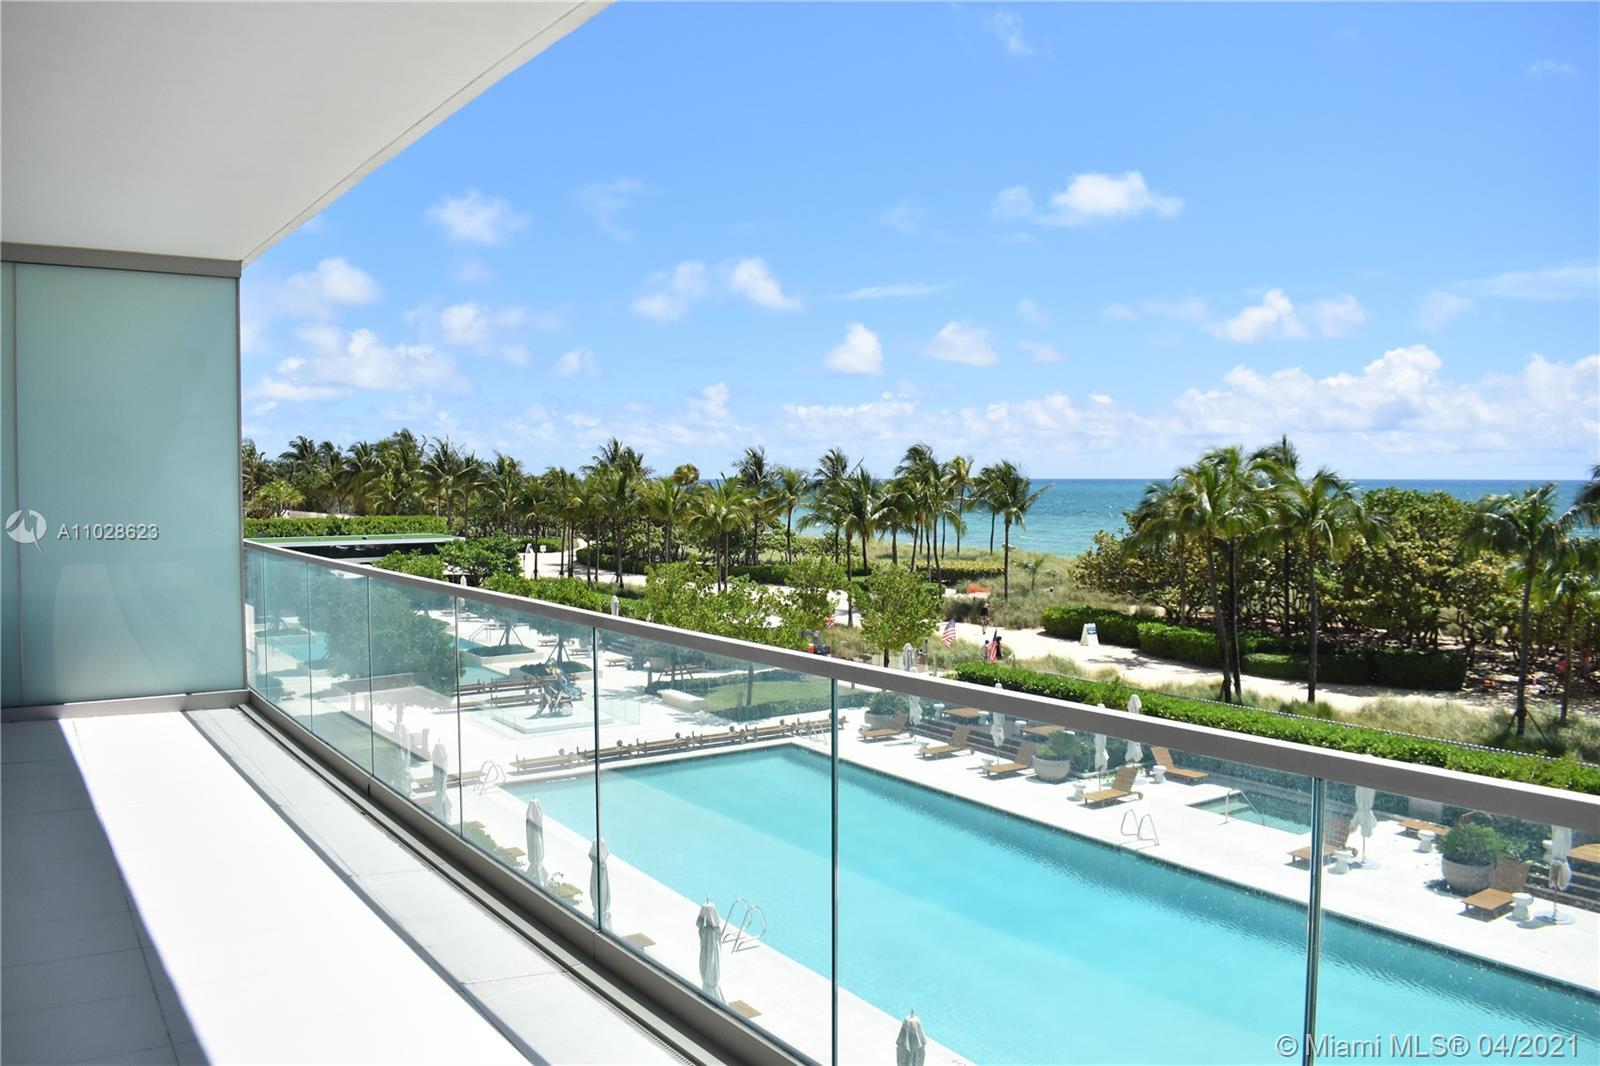 Lowest priced ocean front corner unit 2 beds, 2 1/2 Baths at the beautiful & desirable Oceana Bal Ha